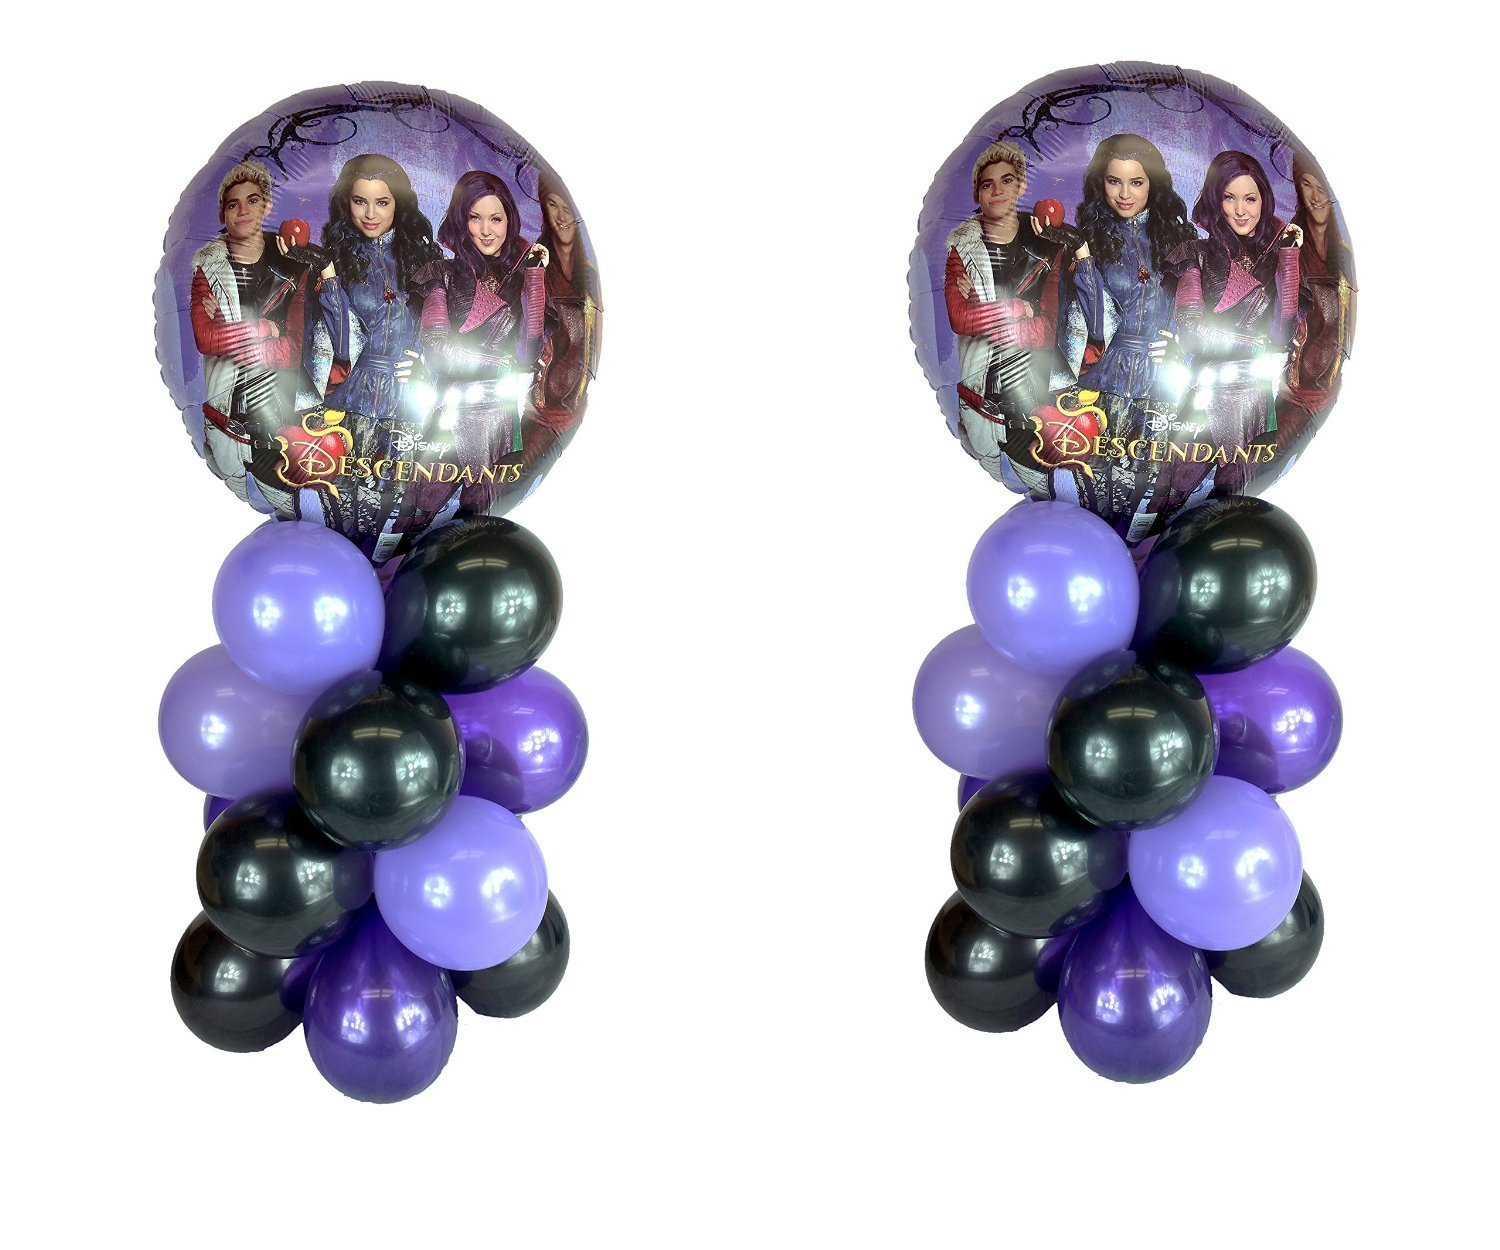 The Descendants Balloon Table Display Birthday Party - AIR FILL, NO HELIUM NEEDED! ~ 2 pack by Party Supplies